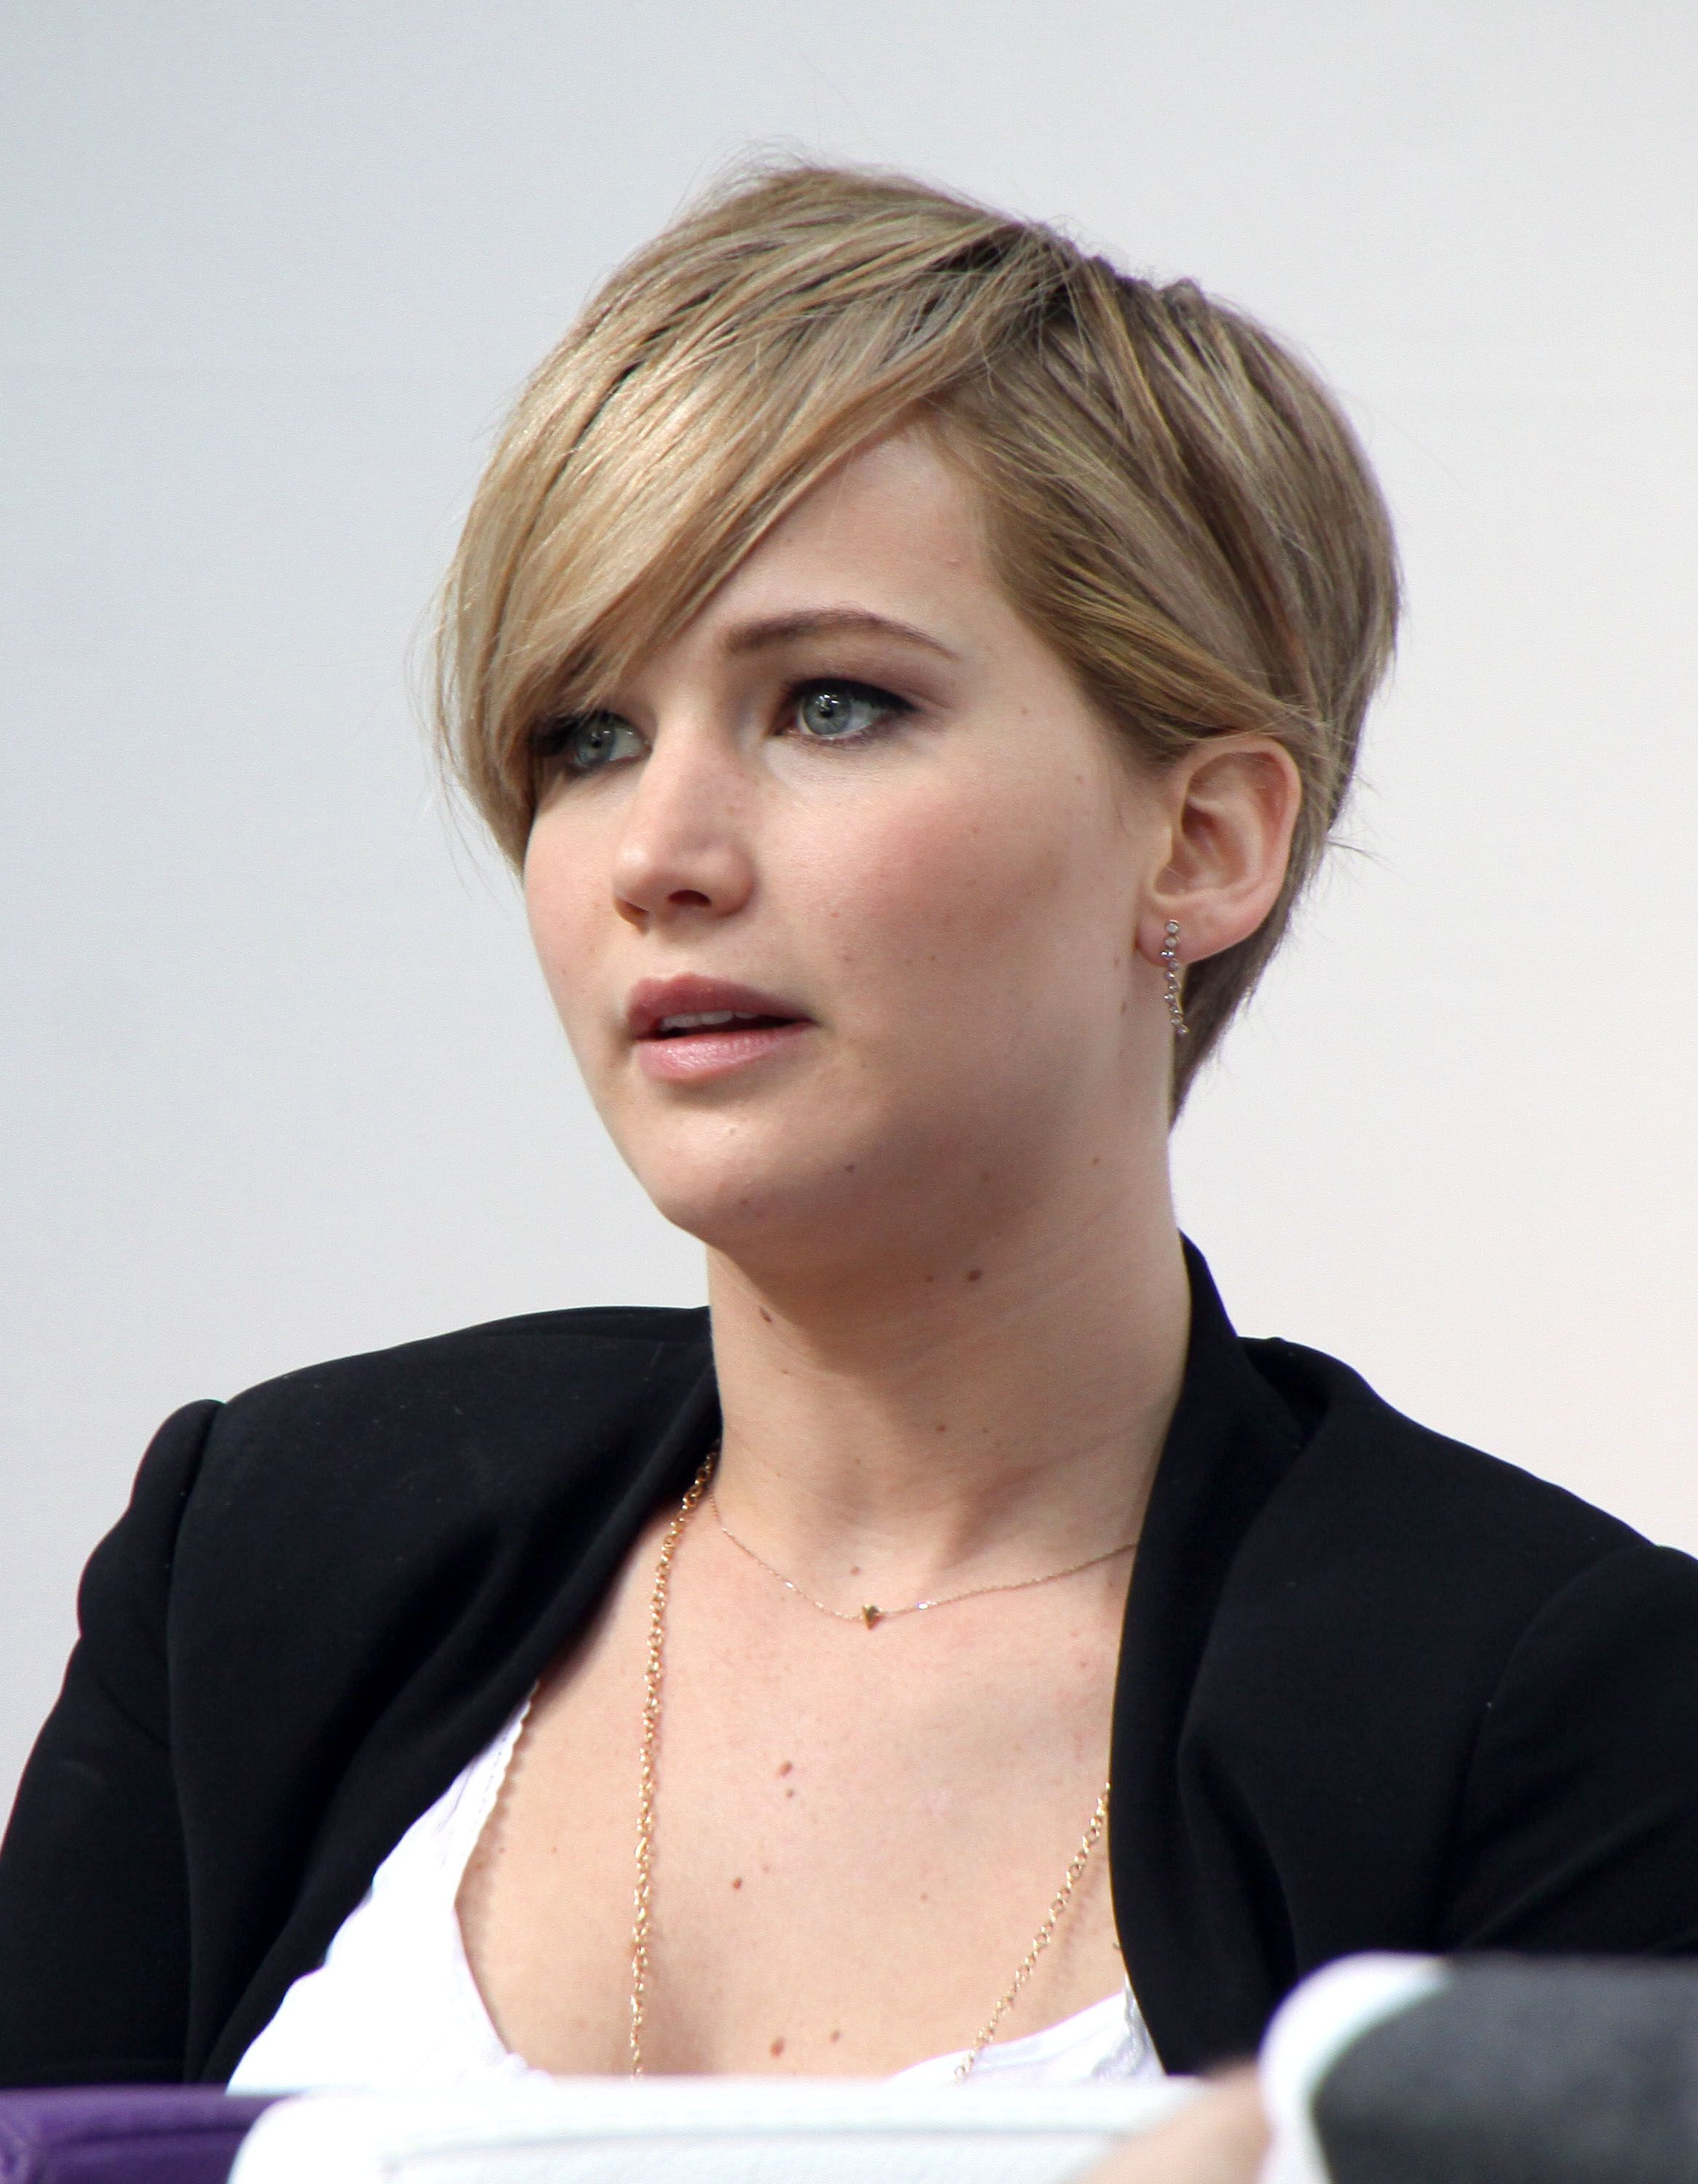 jennifer lawrence hairstyle - Buscar con Google